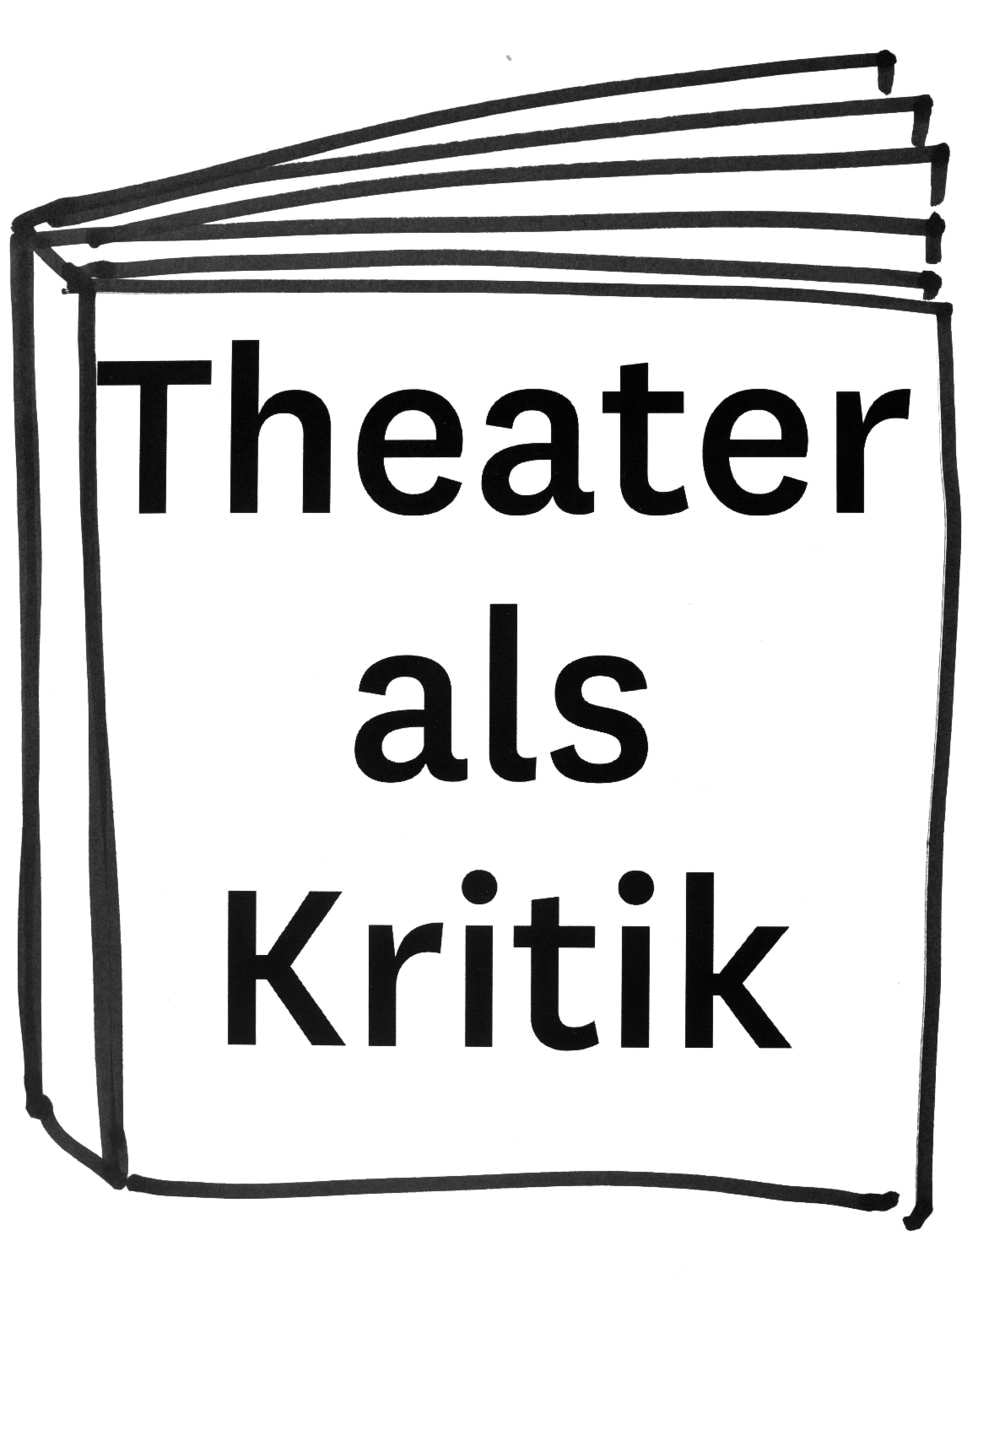 theater-as-critique-slip-11-1005x1435px